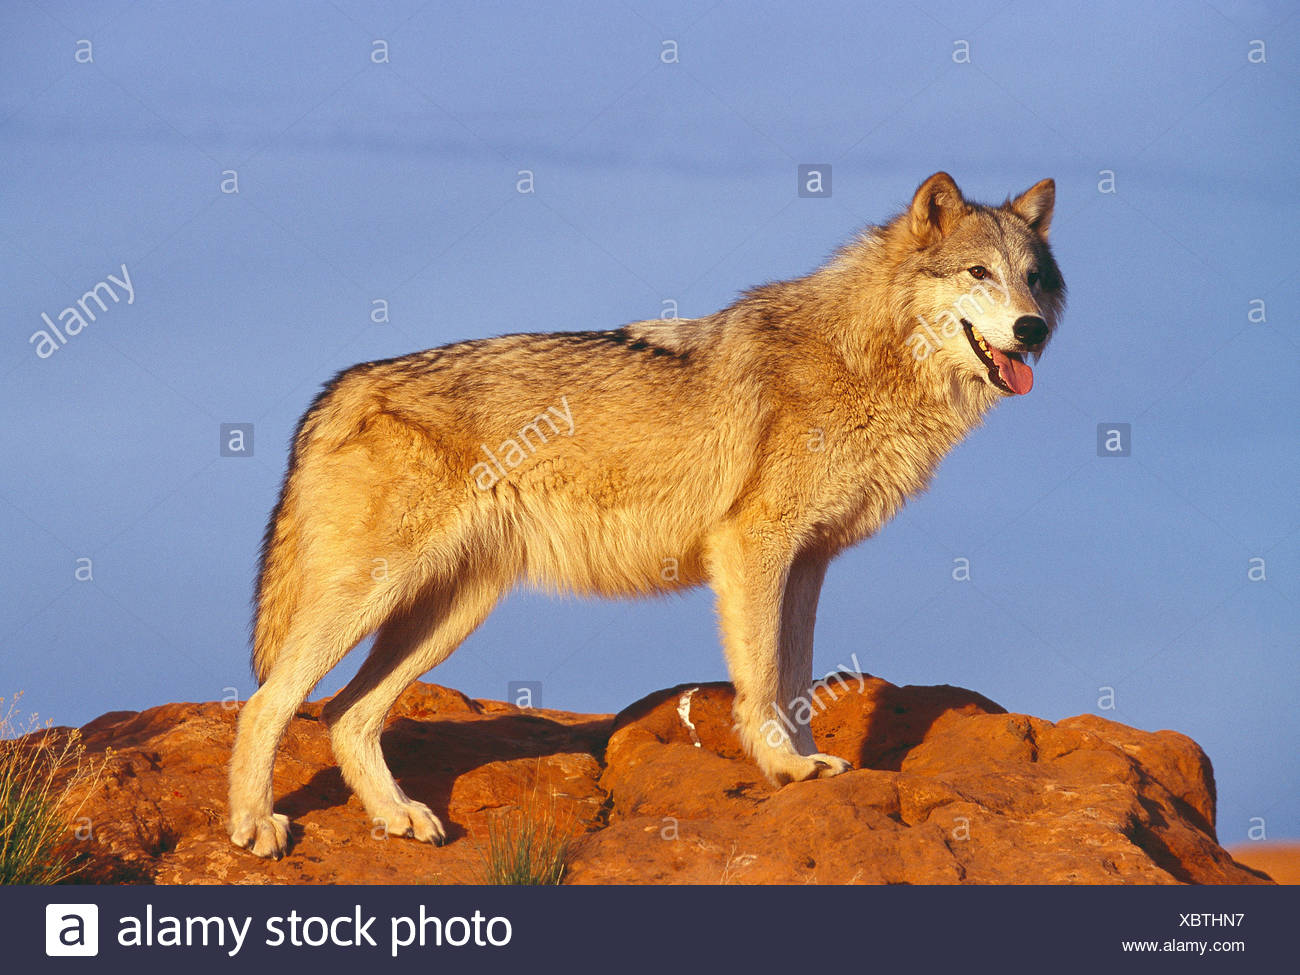 USA. La faune. Loup gris. Photo Stock